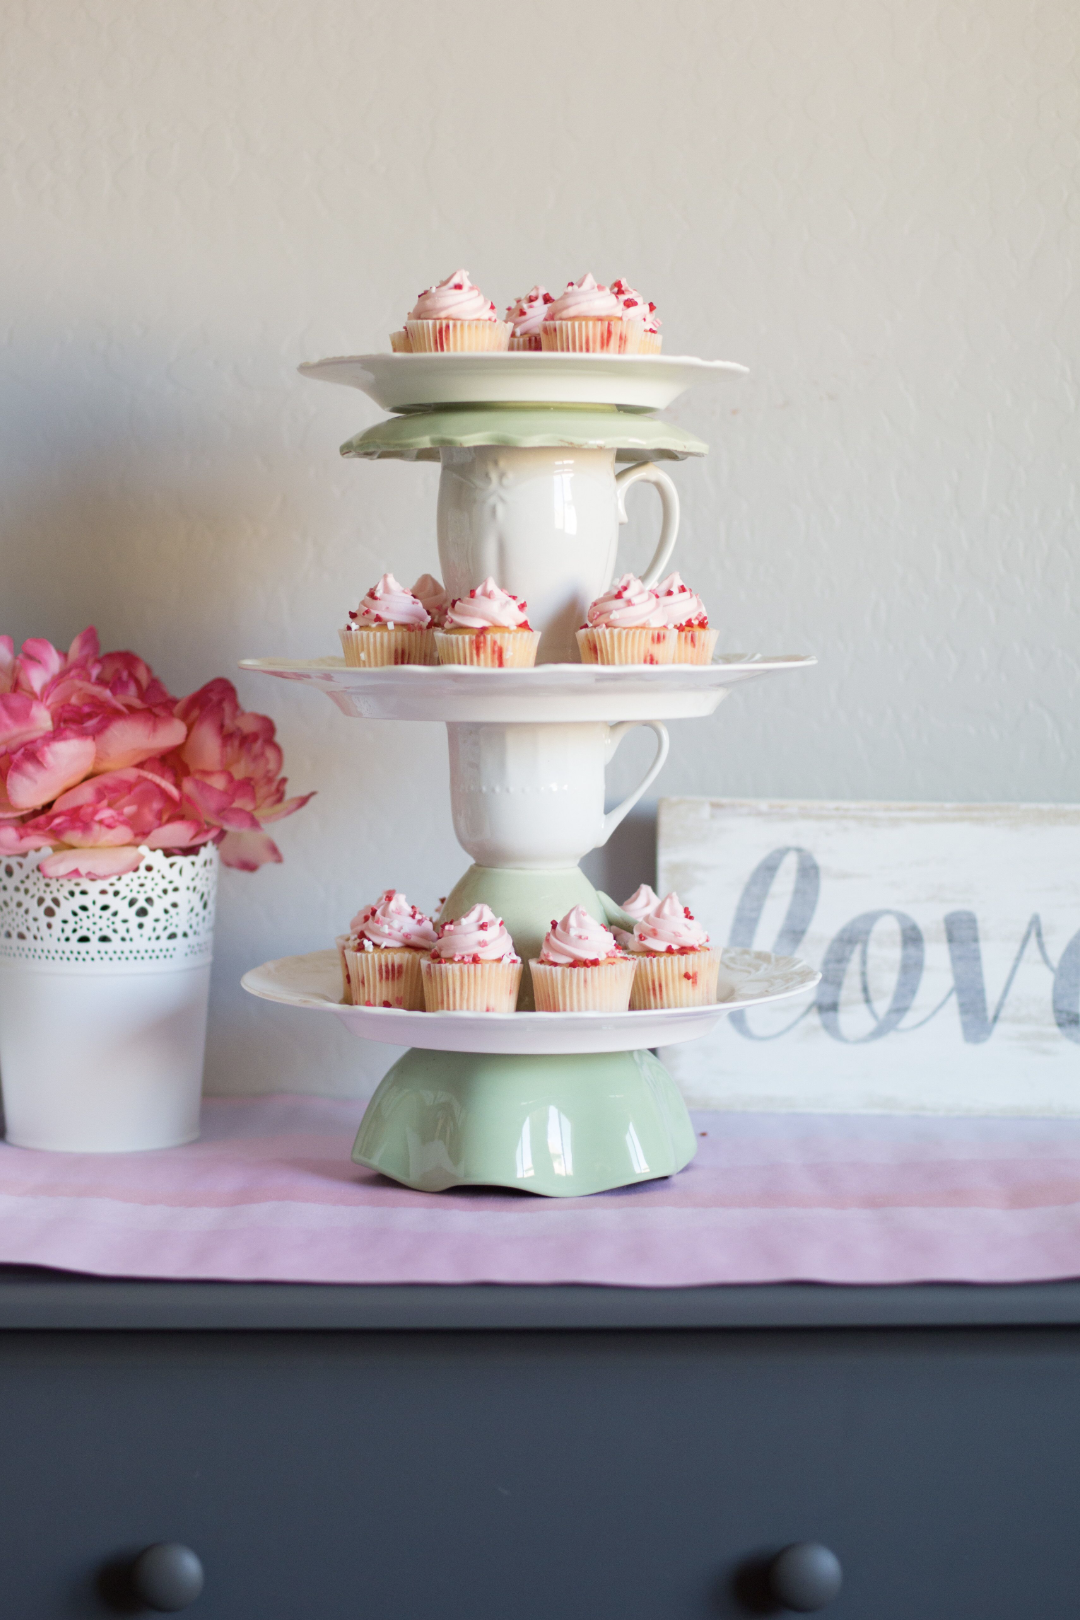 DIY tiered cake stand